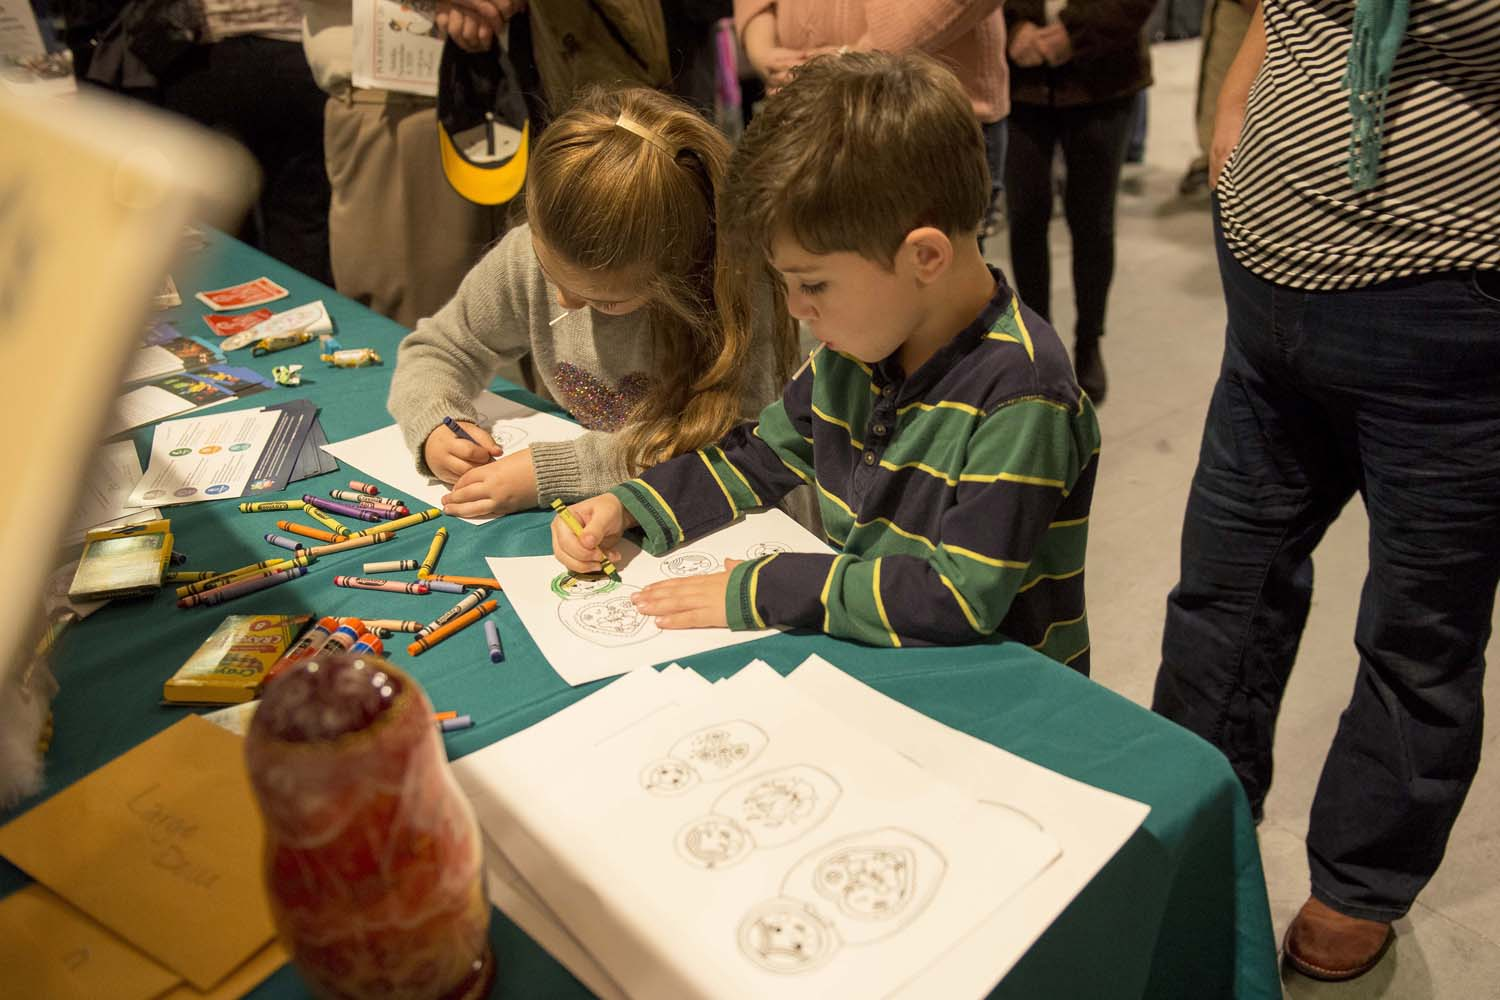 Children color in images of nesting dolls at Sunday's Polish Festival in the Cathedral of Learning.